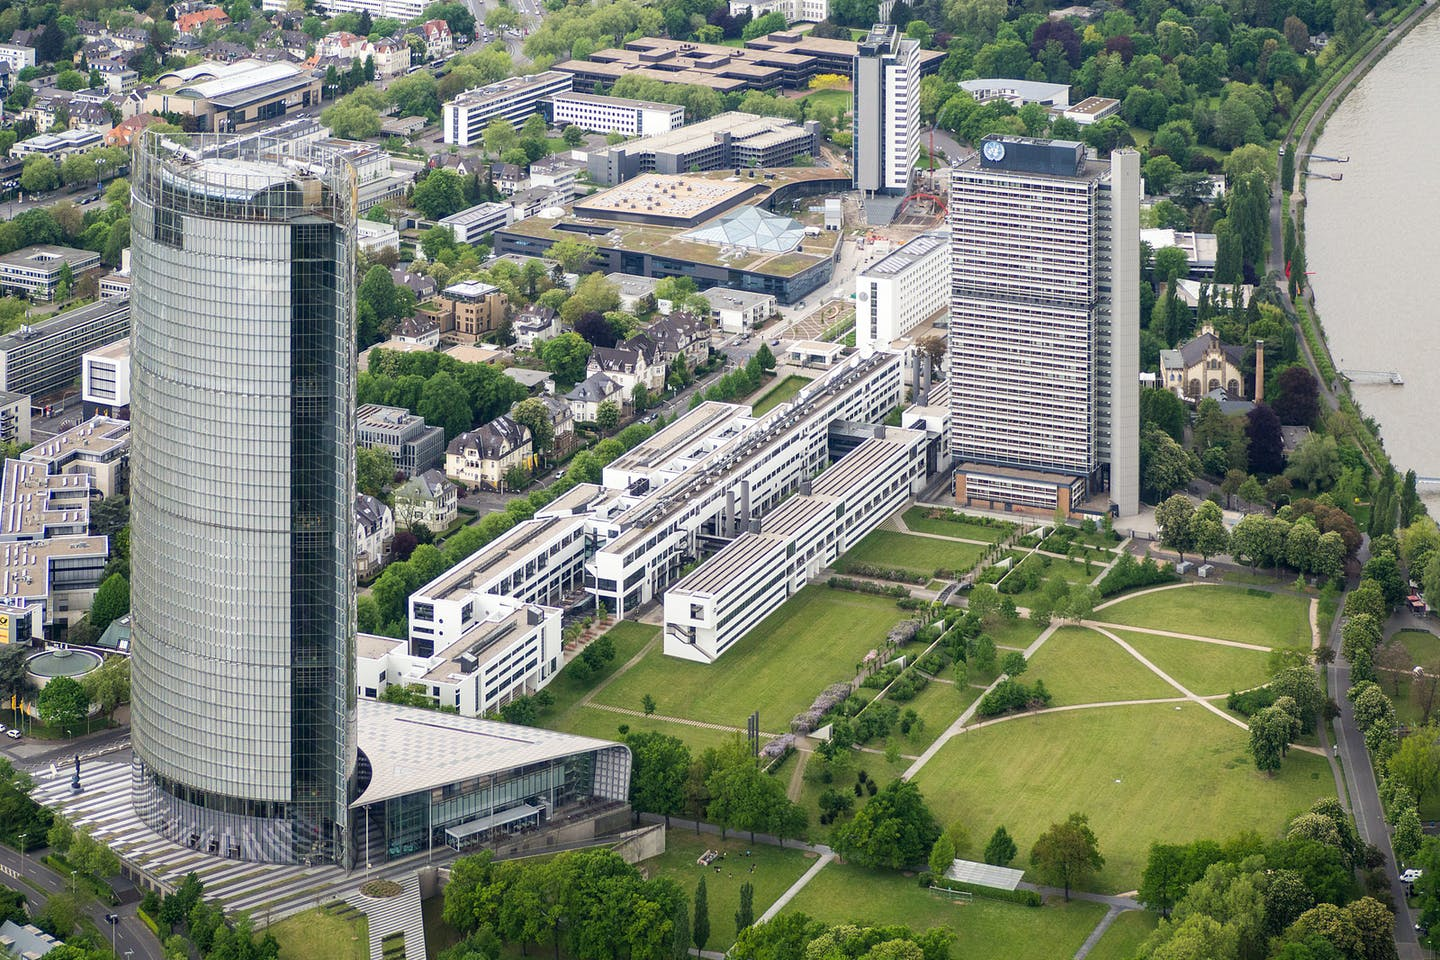 WCCB in Bonn, Germany